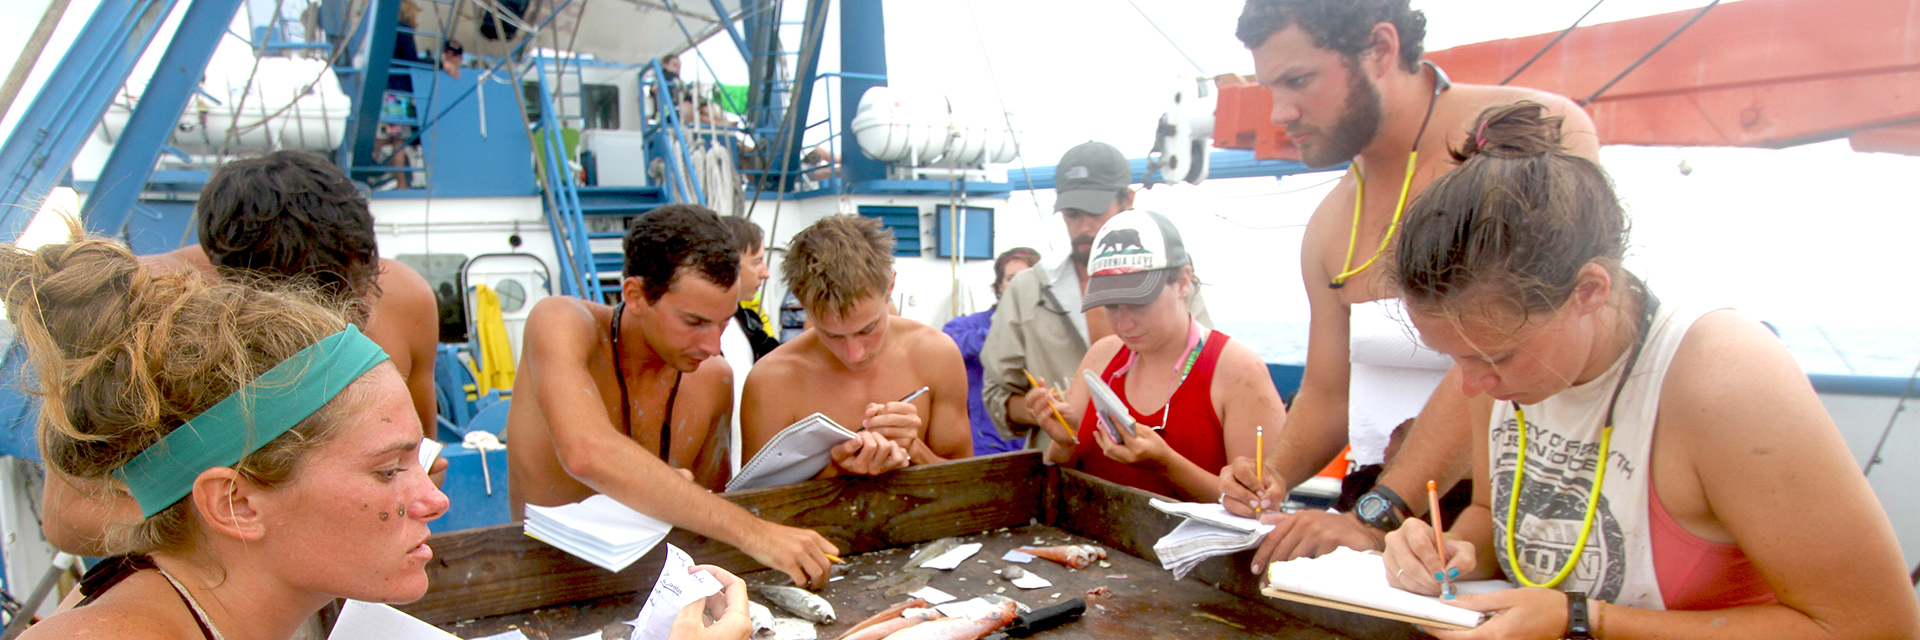 Group-of-Auburn-Students-Majoring-in-Fisheries-Aquaculture-Aquatic-Sciences-Fish-Research-Notes-Class-Boat-2972-sm